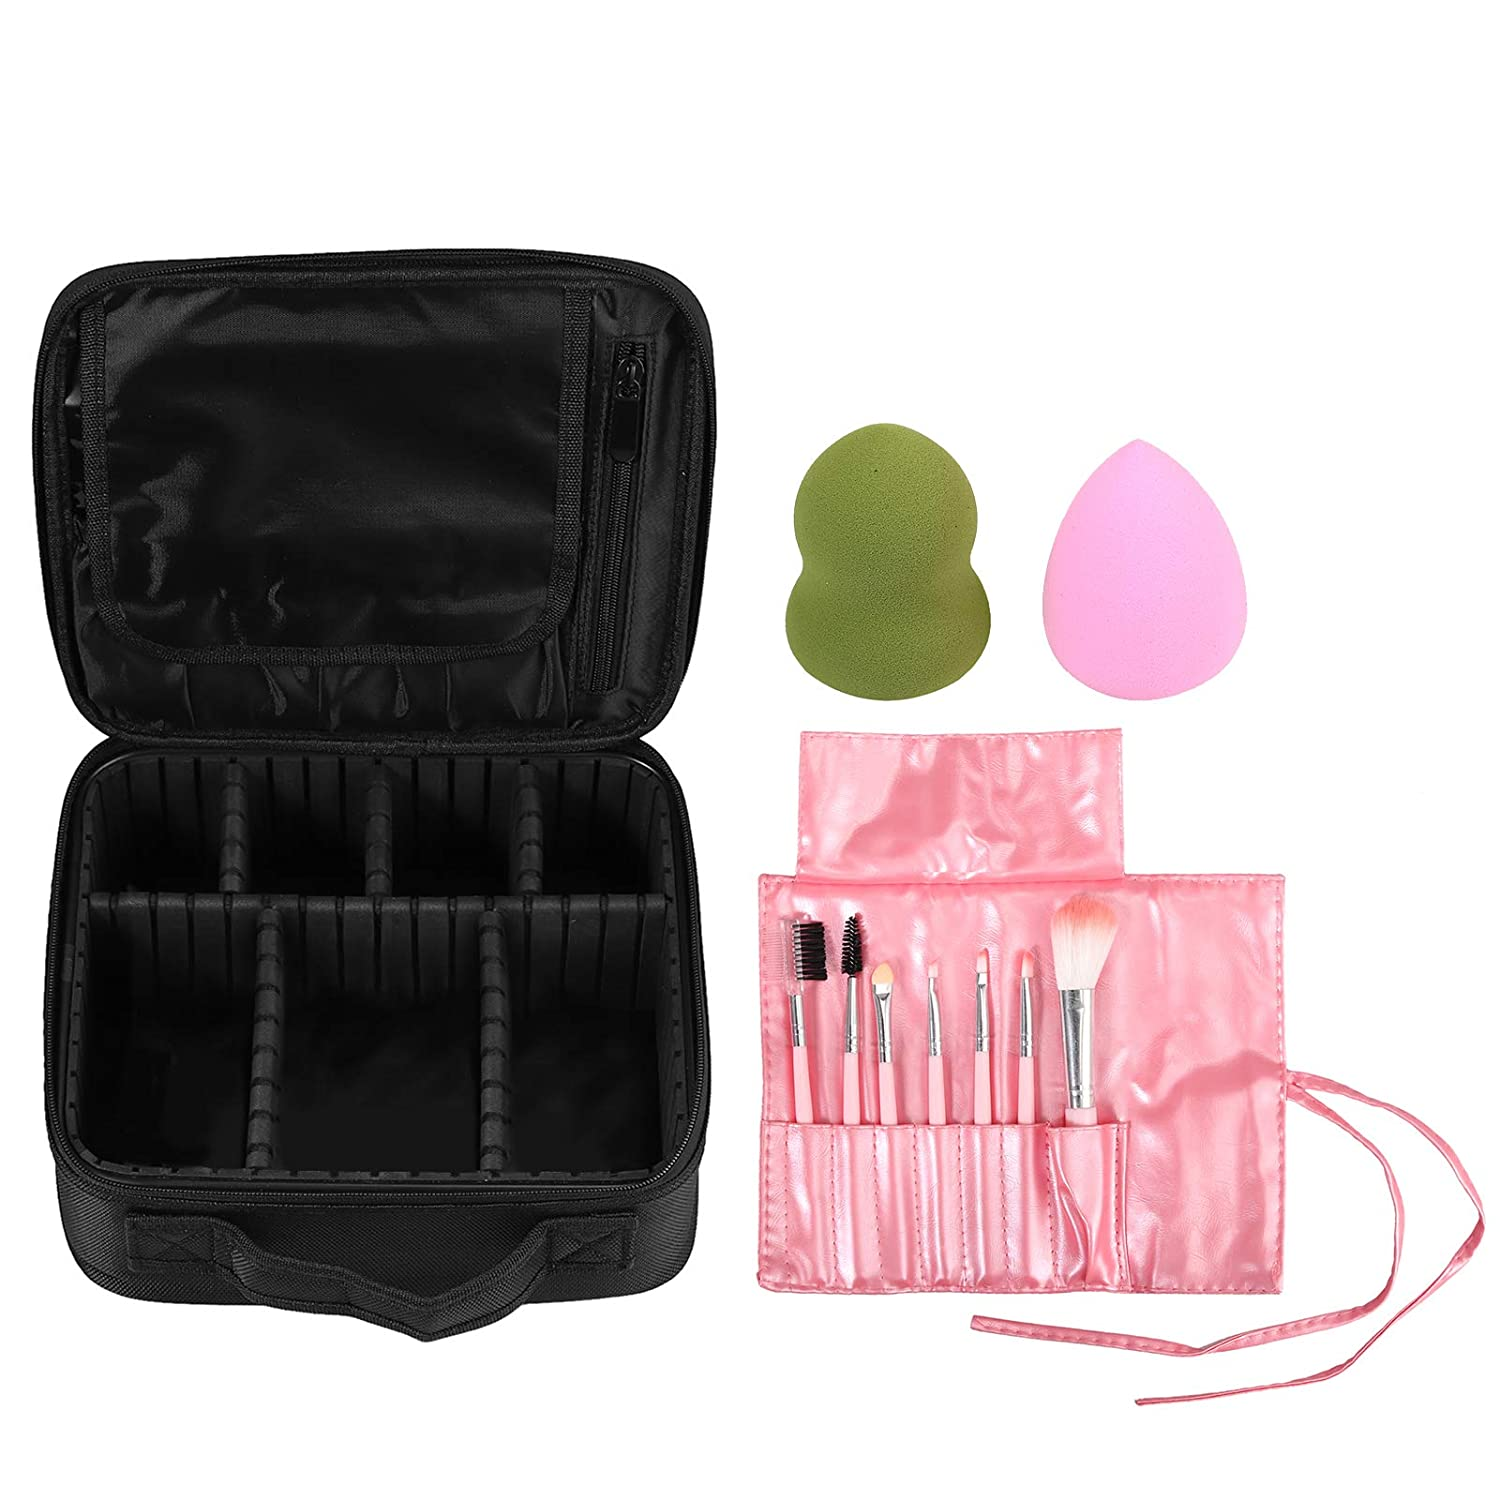 Tanice Cosmetic Bag Travel Makeup Bag Adjustable Dividers with 7PCS Makeup Brushes and 2PCS Makeup Sponges for Cosmetics Make Up Tools Jewelry